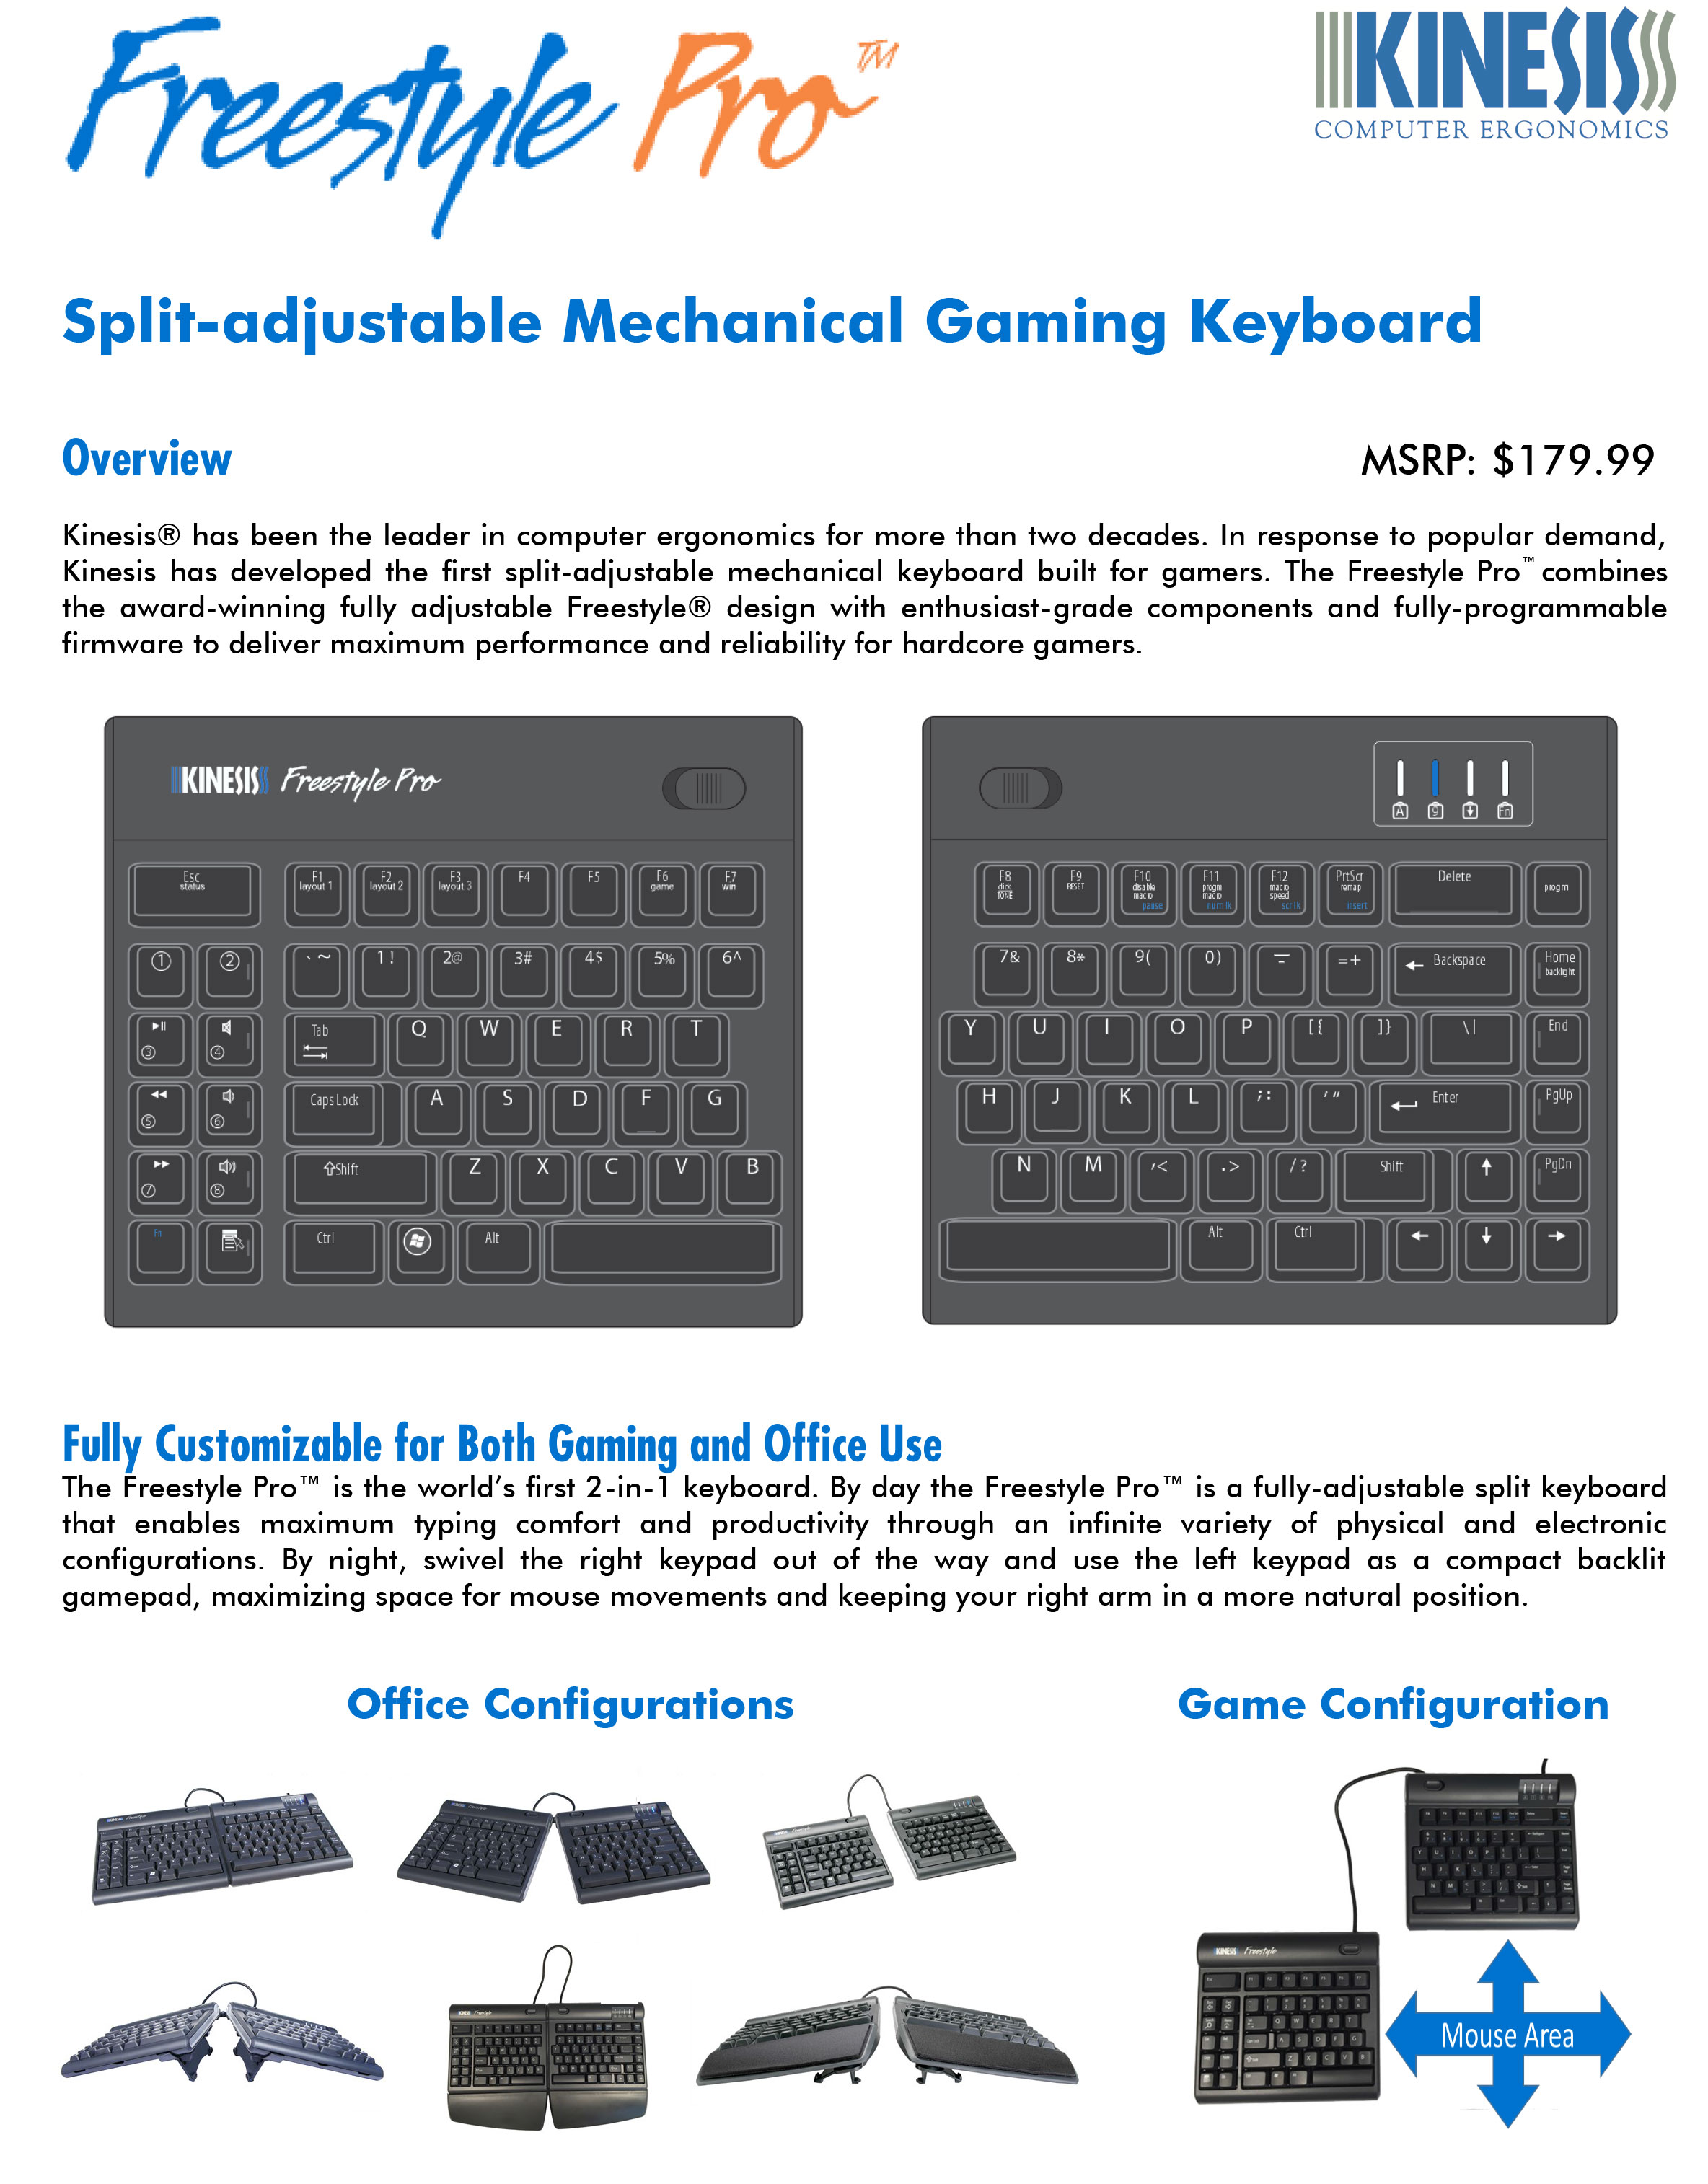 Kinesis-Freestyle-Pro-Keyboard-Brochure-1.jpg